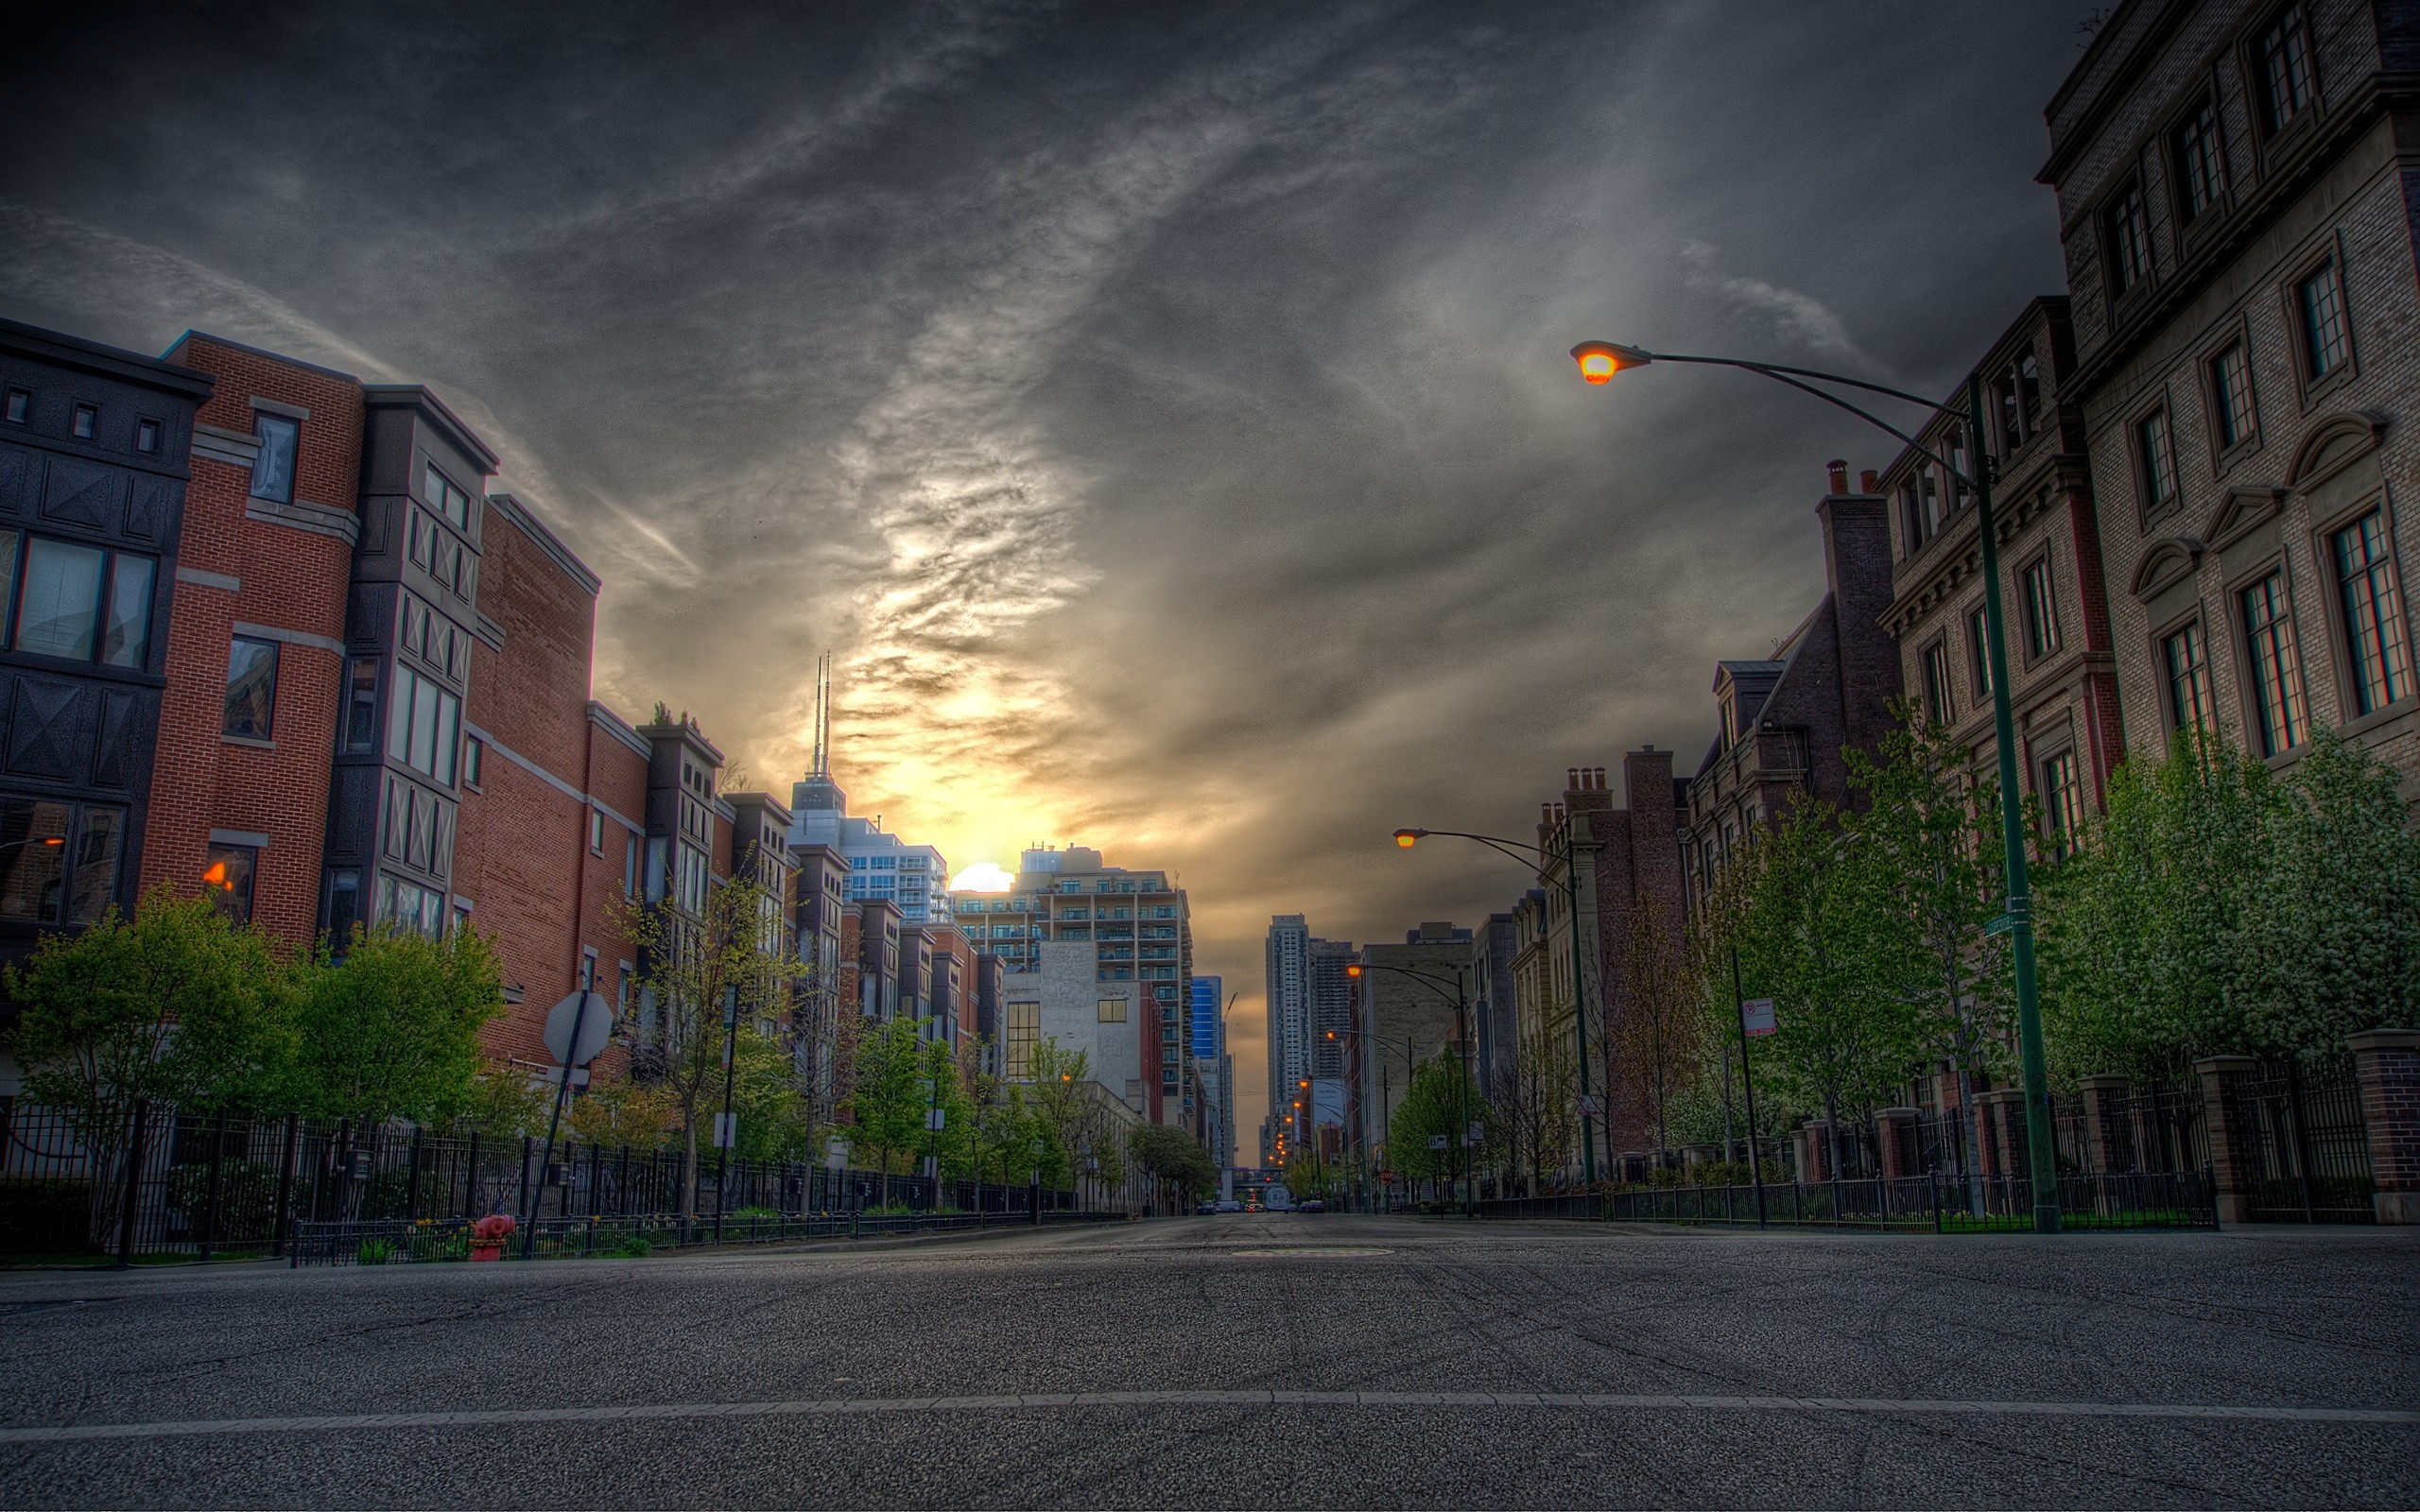 Wallpaper house, city, road, street, hdr